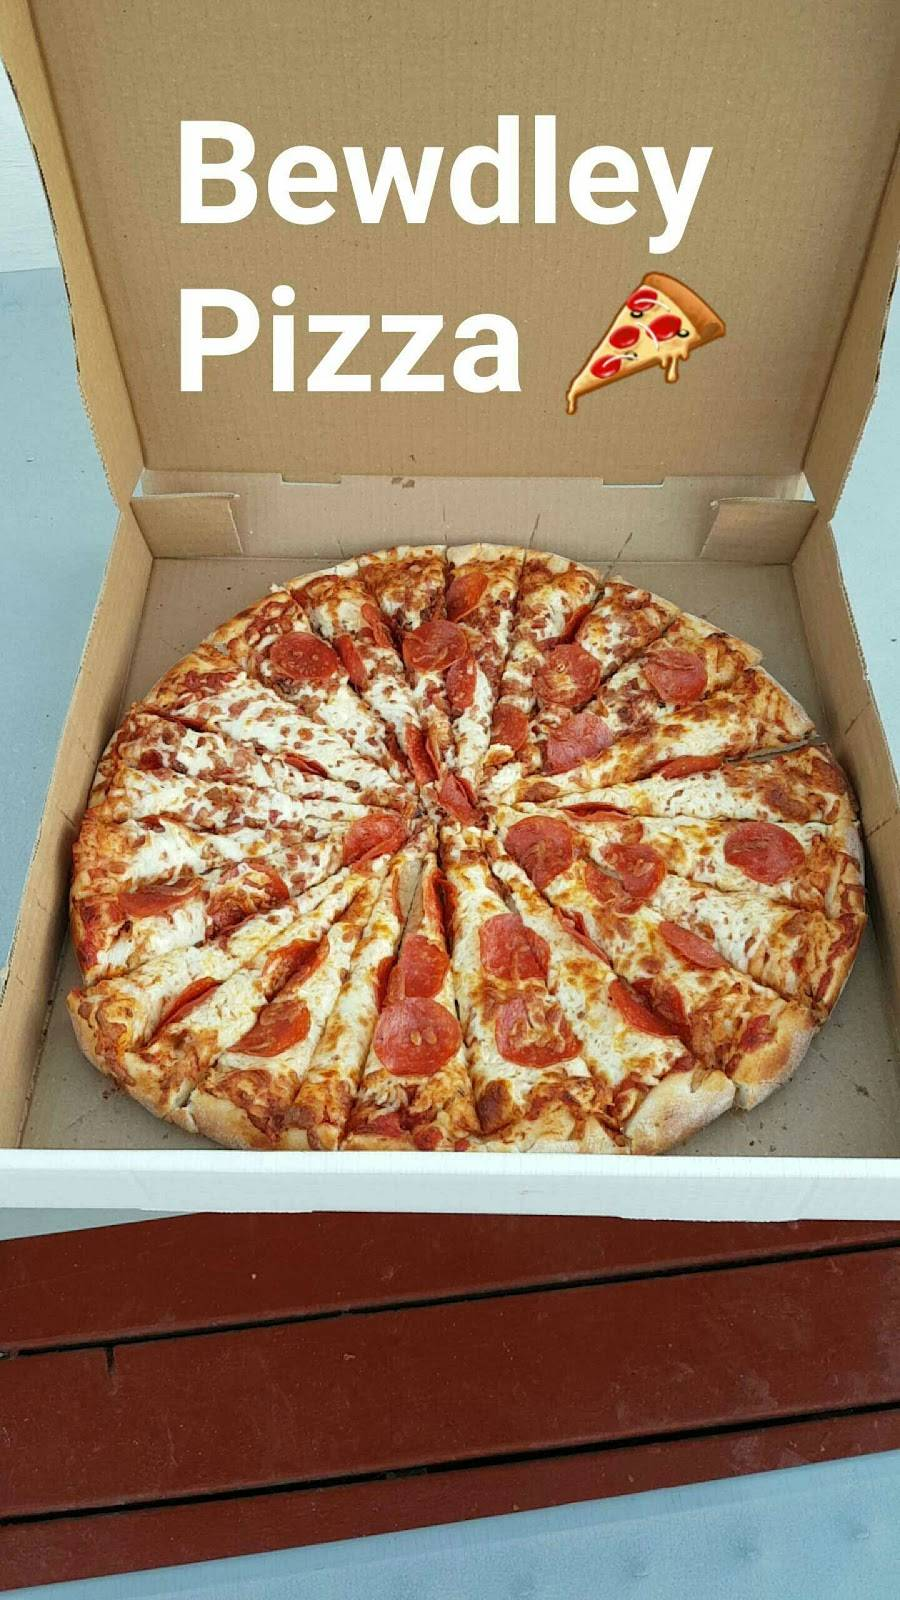 Bewdley Pizza | restaurant | 5070 Rice Lake Dr N, Bewdley, ON K0L 1E0, Canada | 9057972770 OR +1 905-797-2770